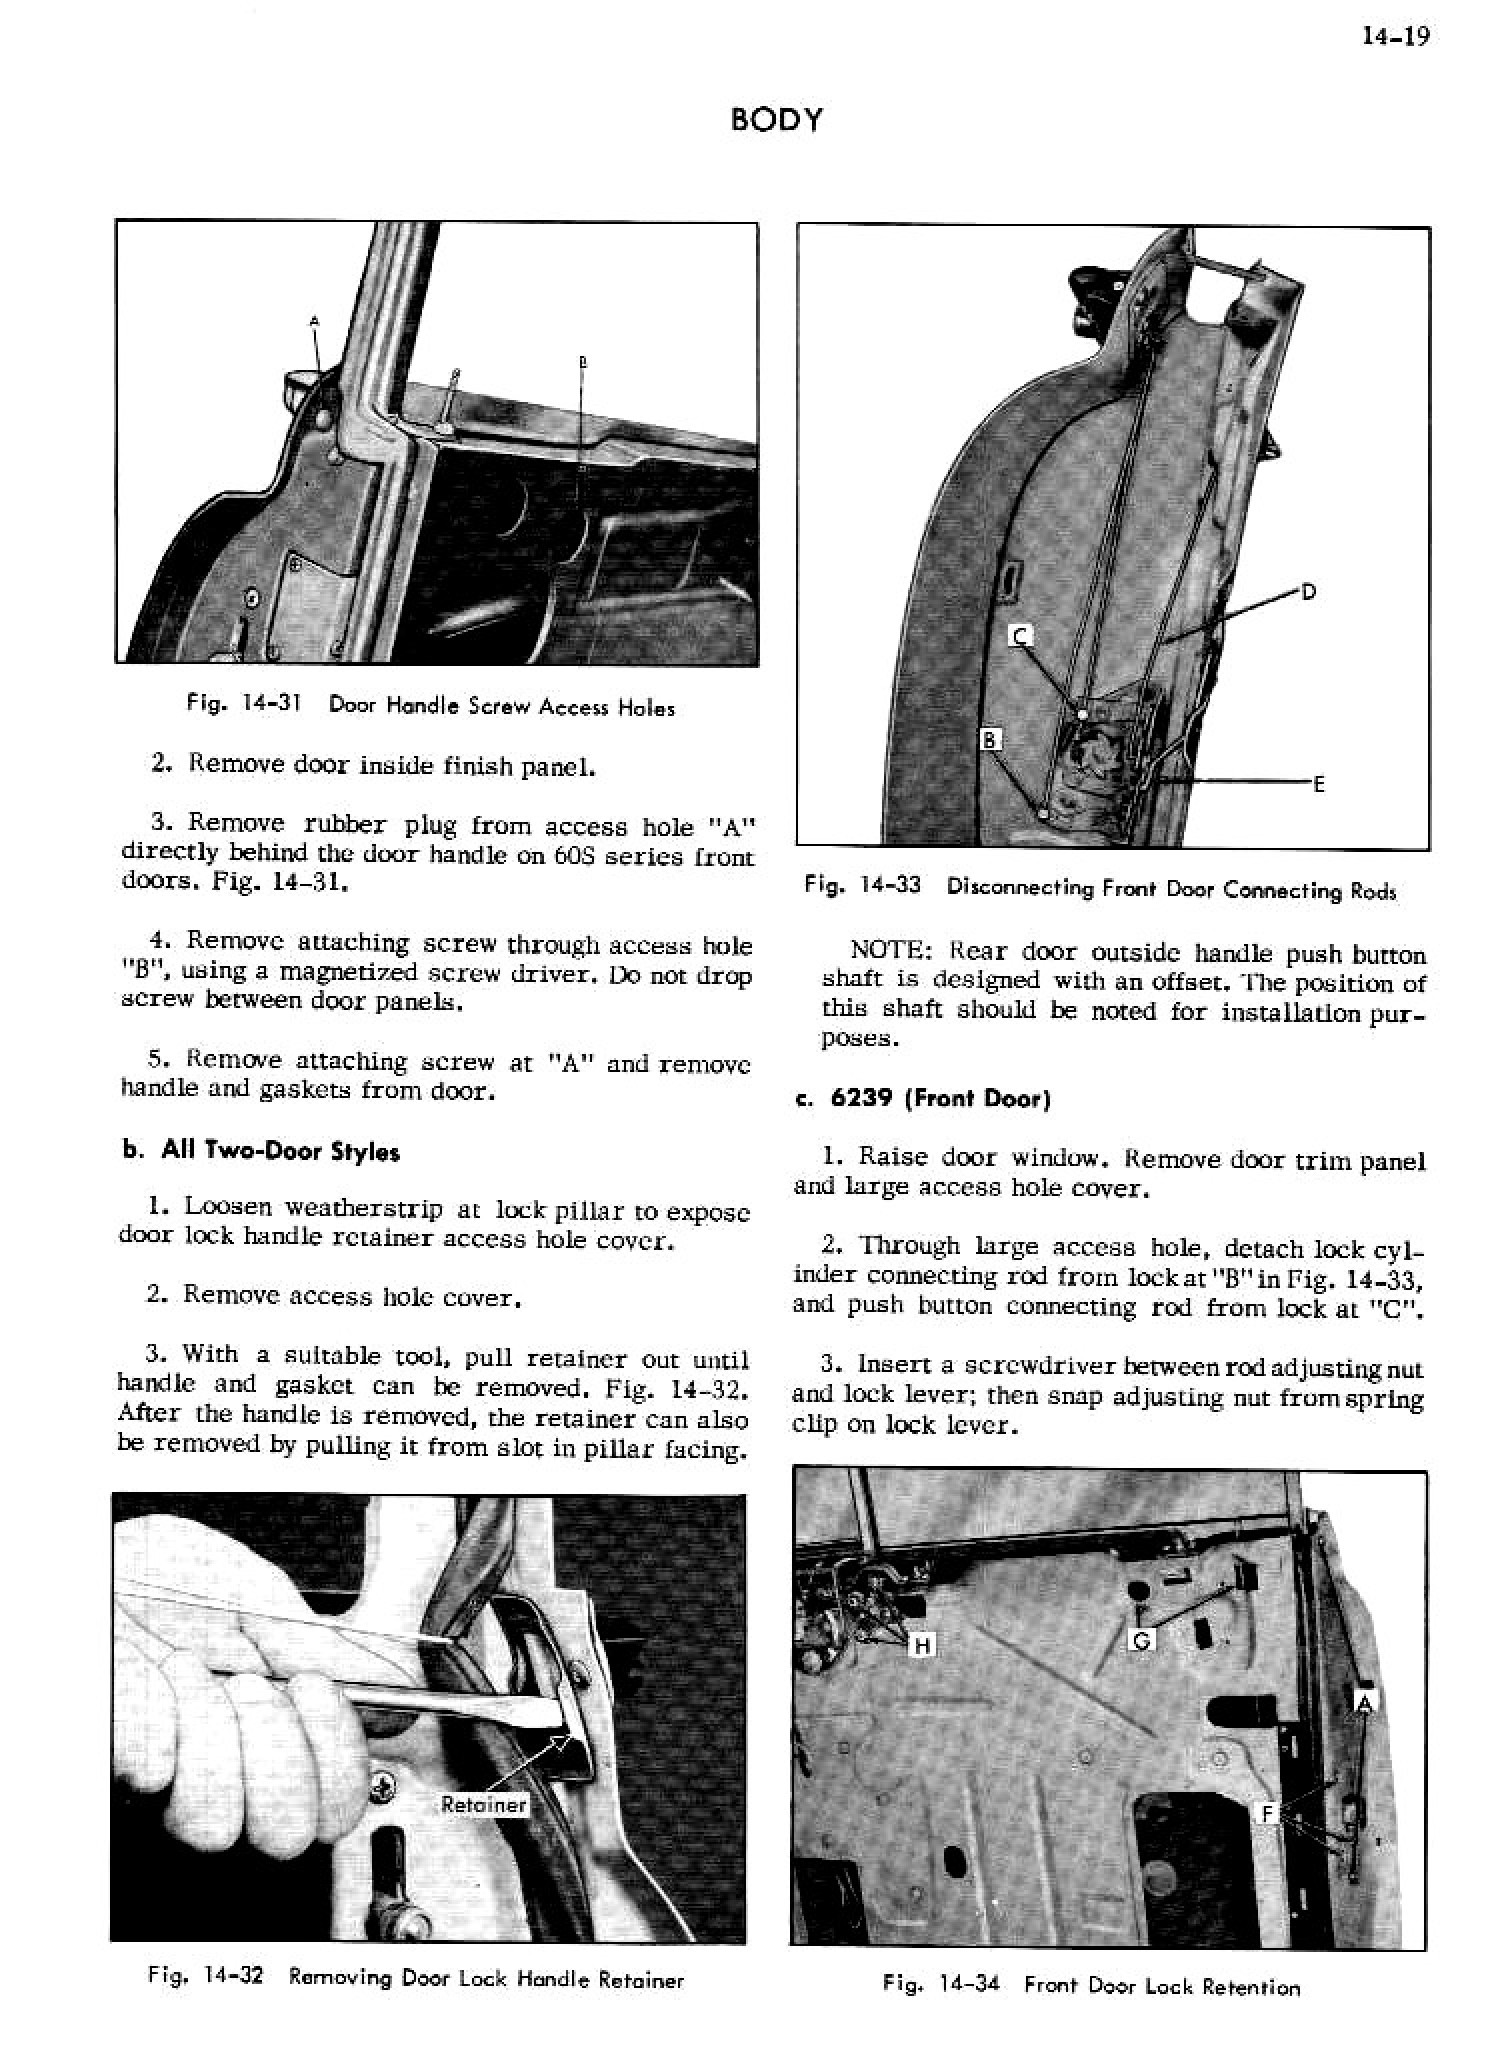 1956 Cadillac Shop Manual- Body Page 19 of 87